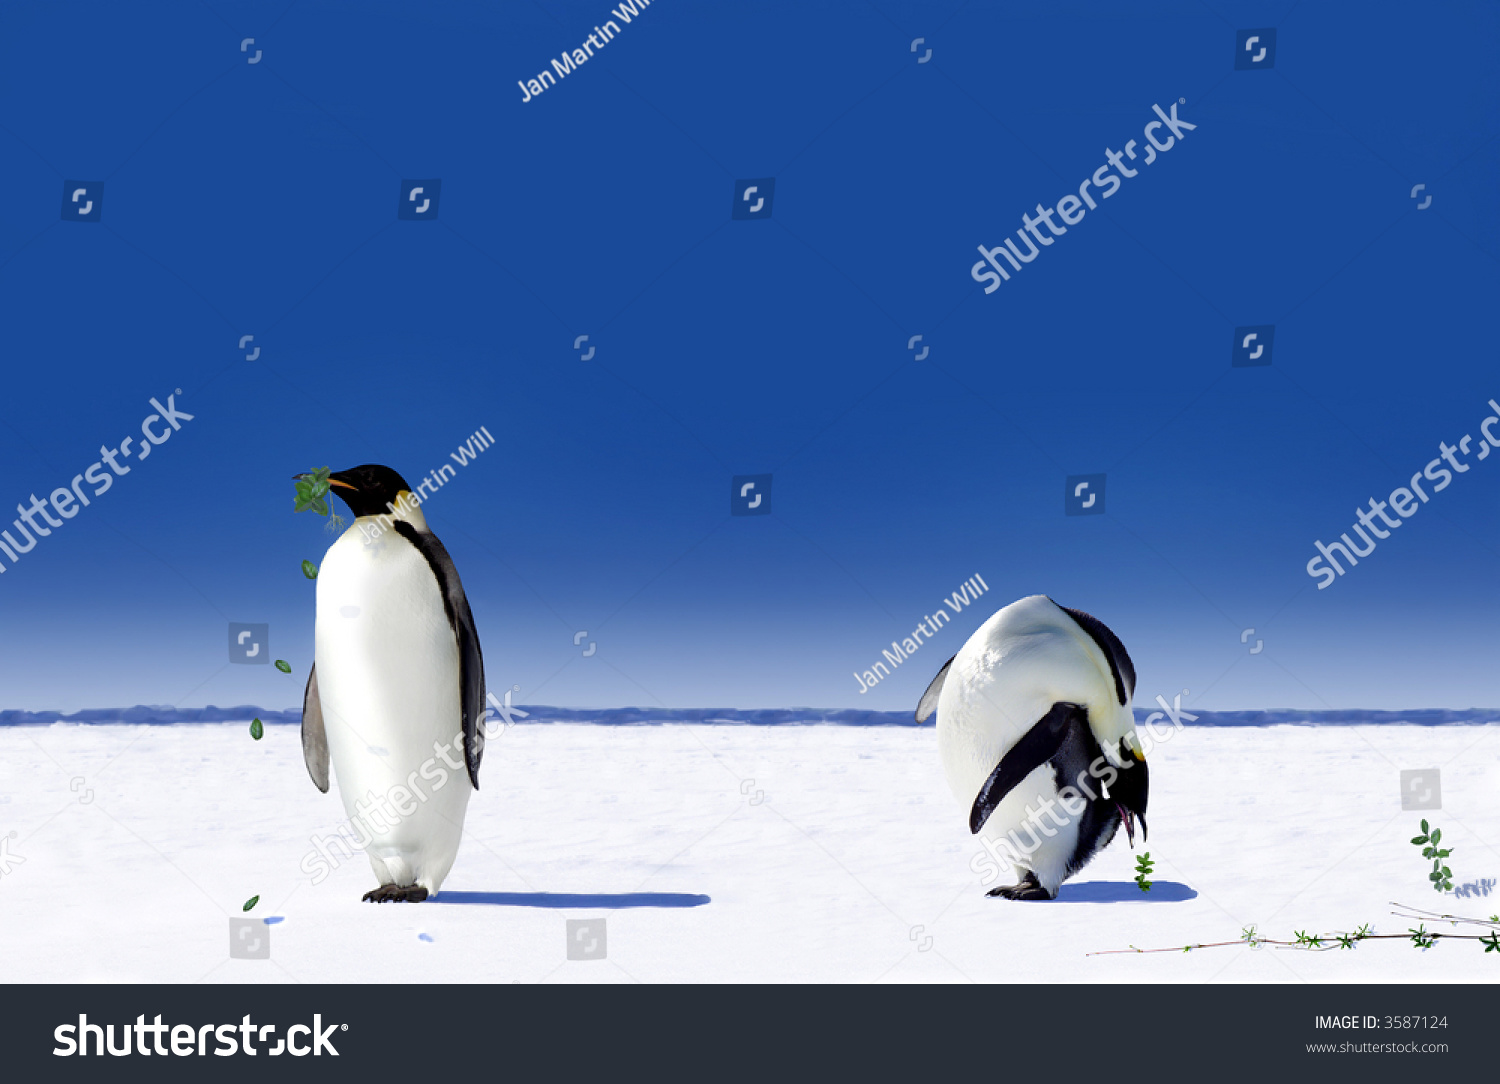 effects of global warming on penguins